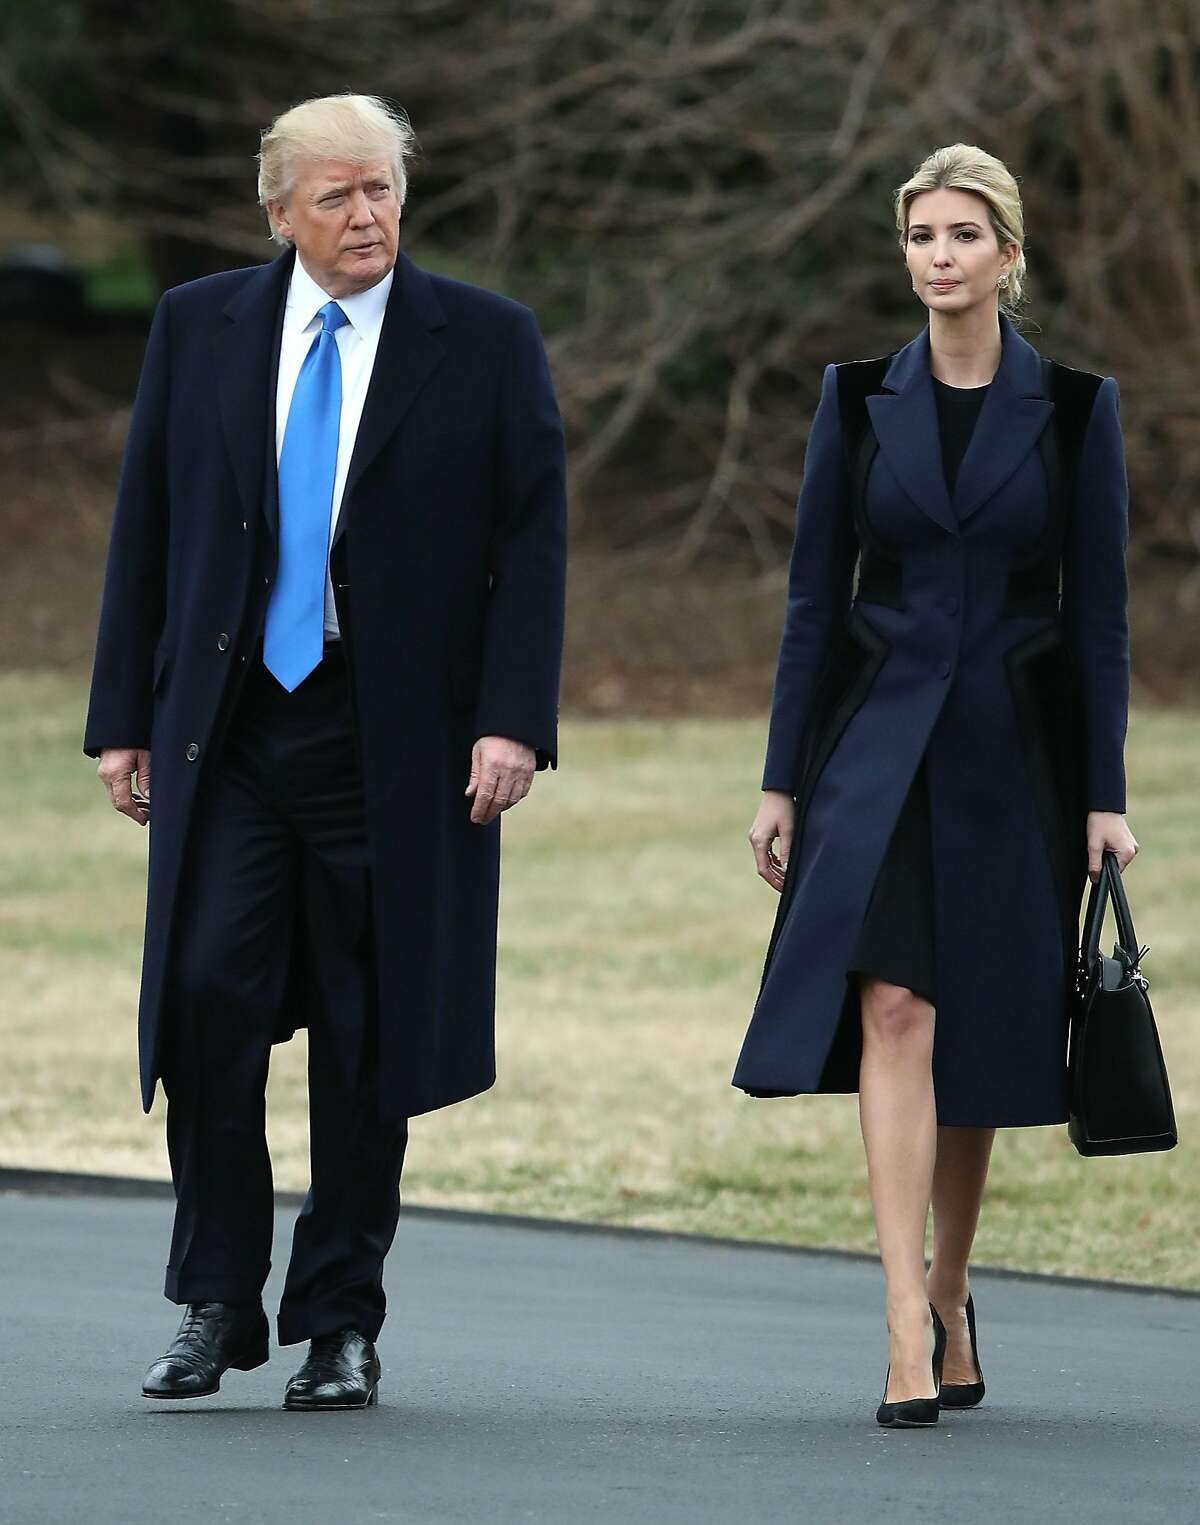 President Trump and daughter Ivanka Trump walk toward Marine One while departing from the White House, on Feb. 1, 2017, in Washington, D.C.